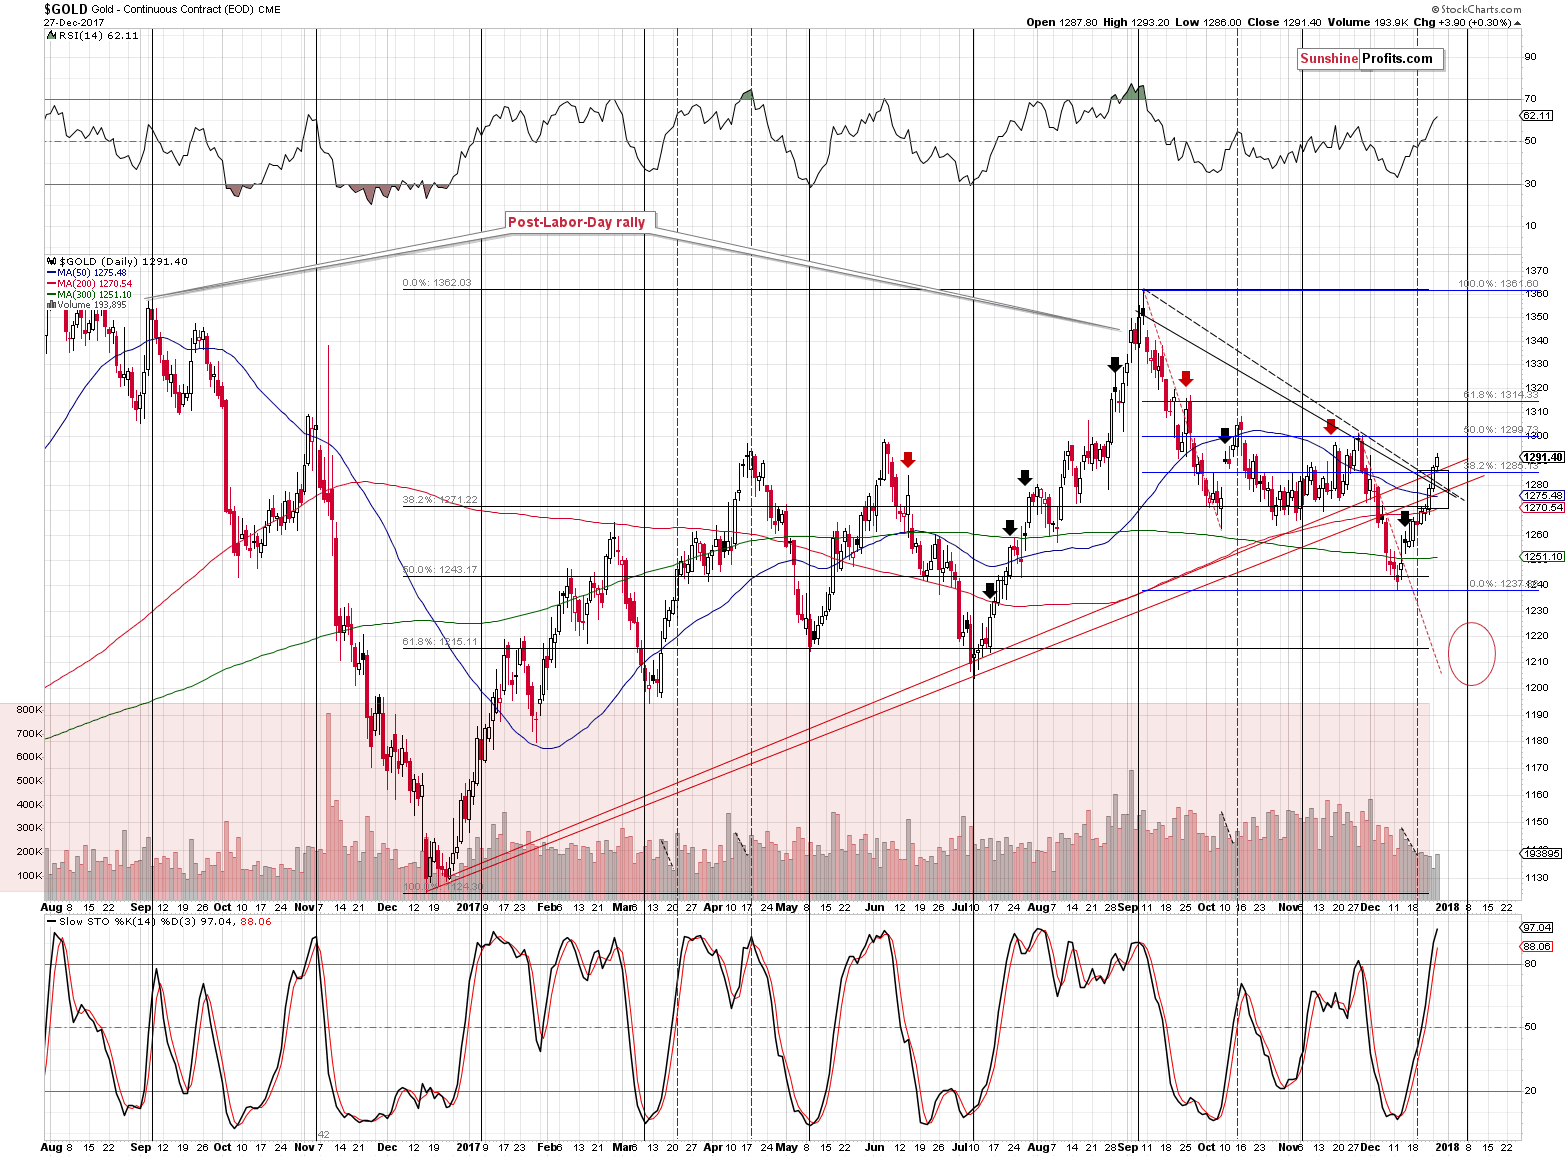 Short-term Gold price chart - Gold spot price